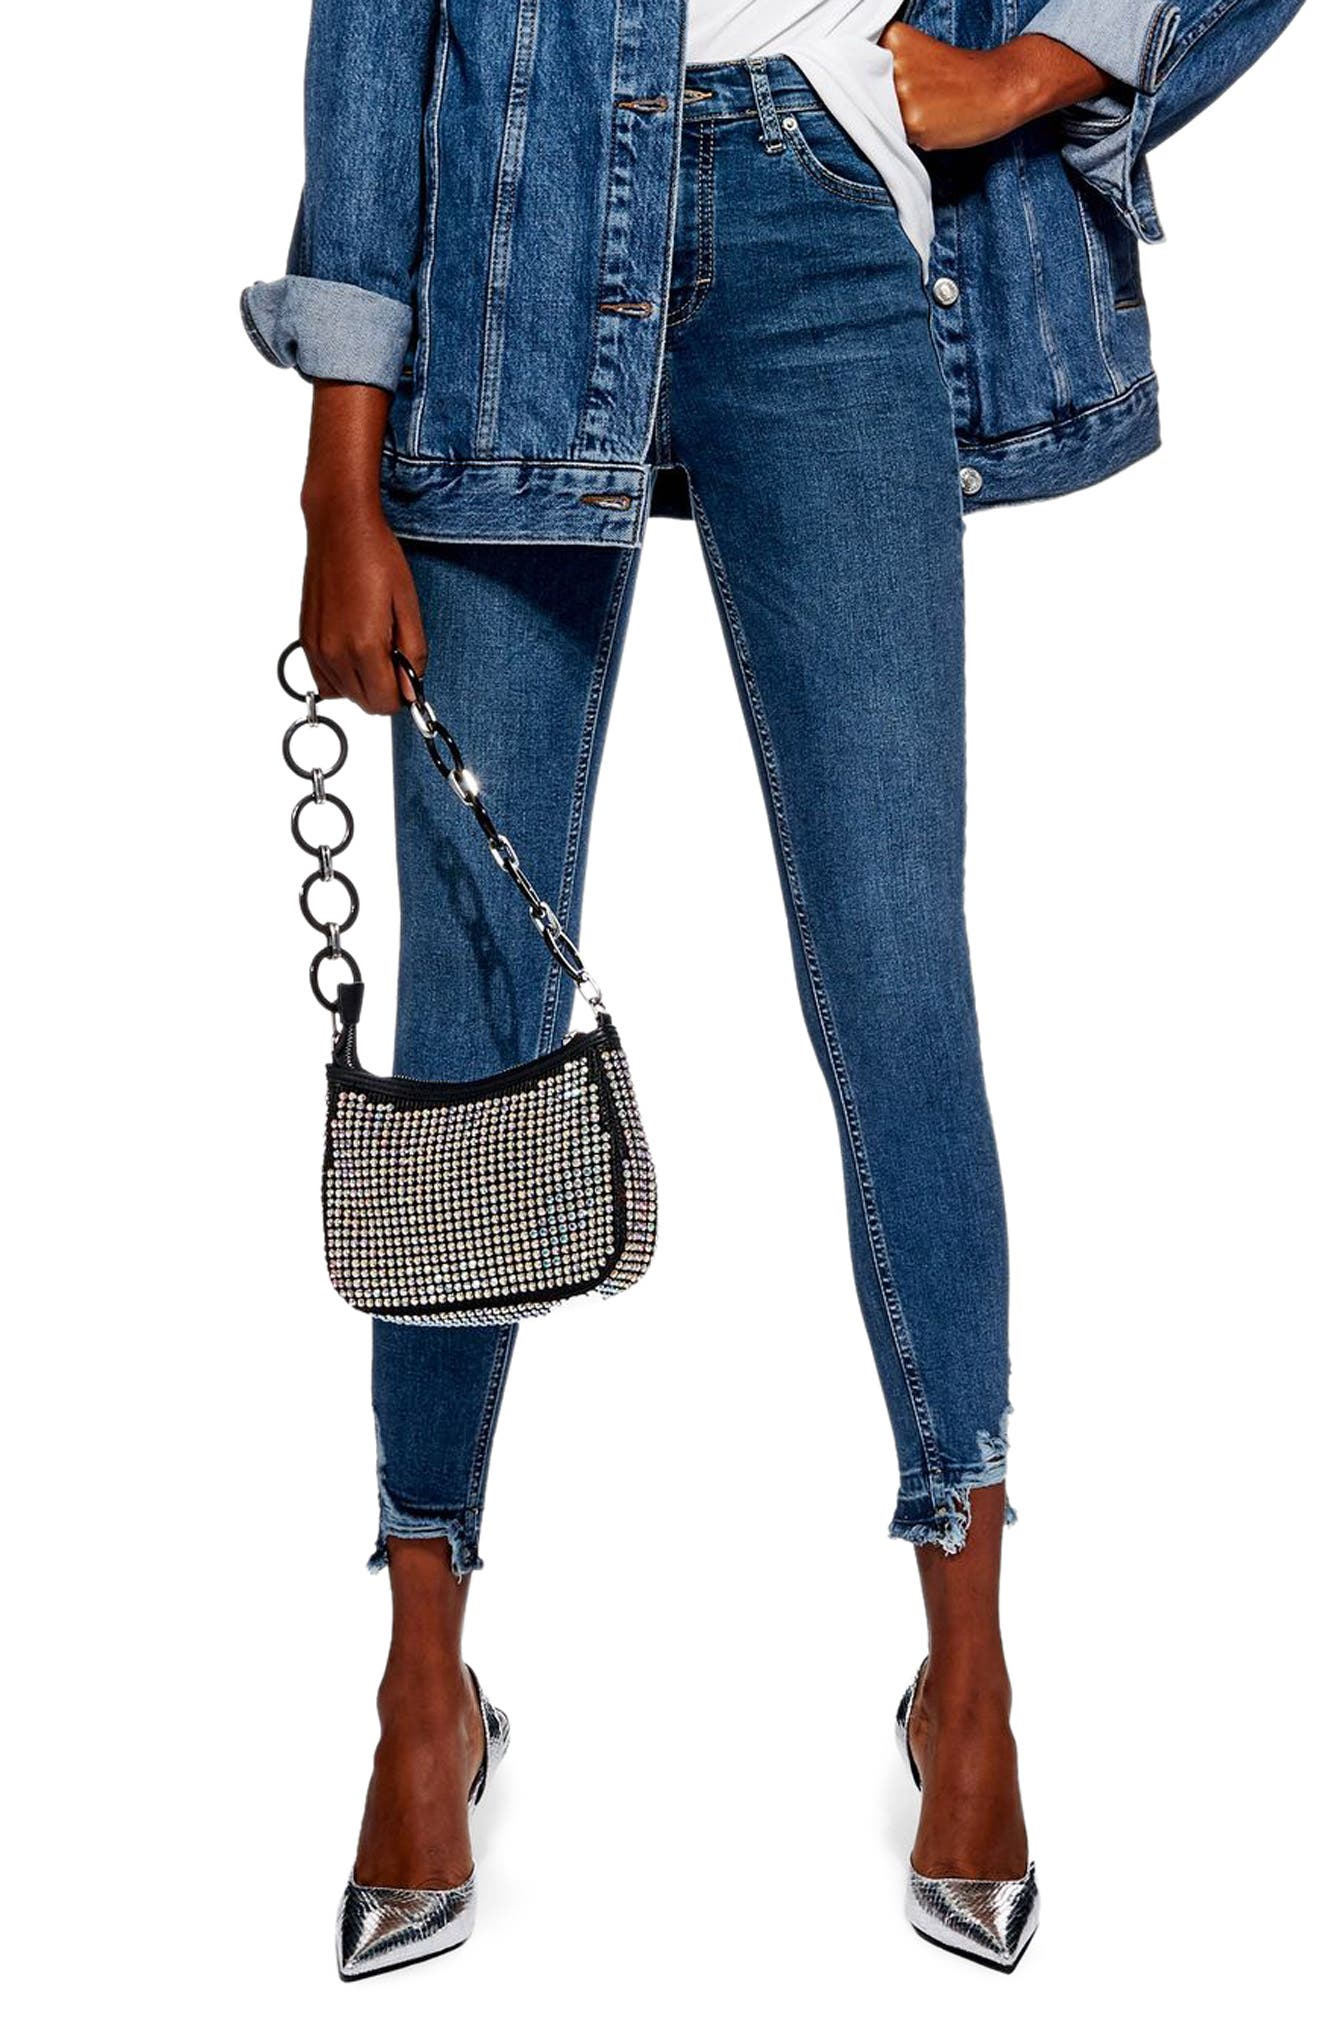 TOPSHOP, Jamie Rip Hem Jeans, Main thumbnail 1, color, MID DENIM